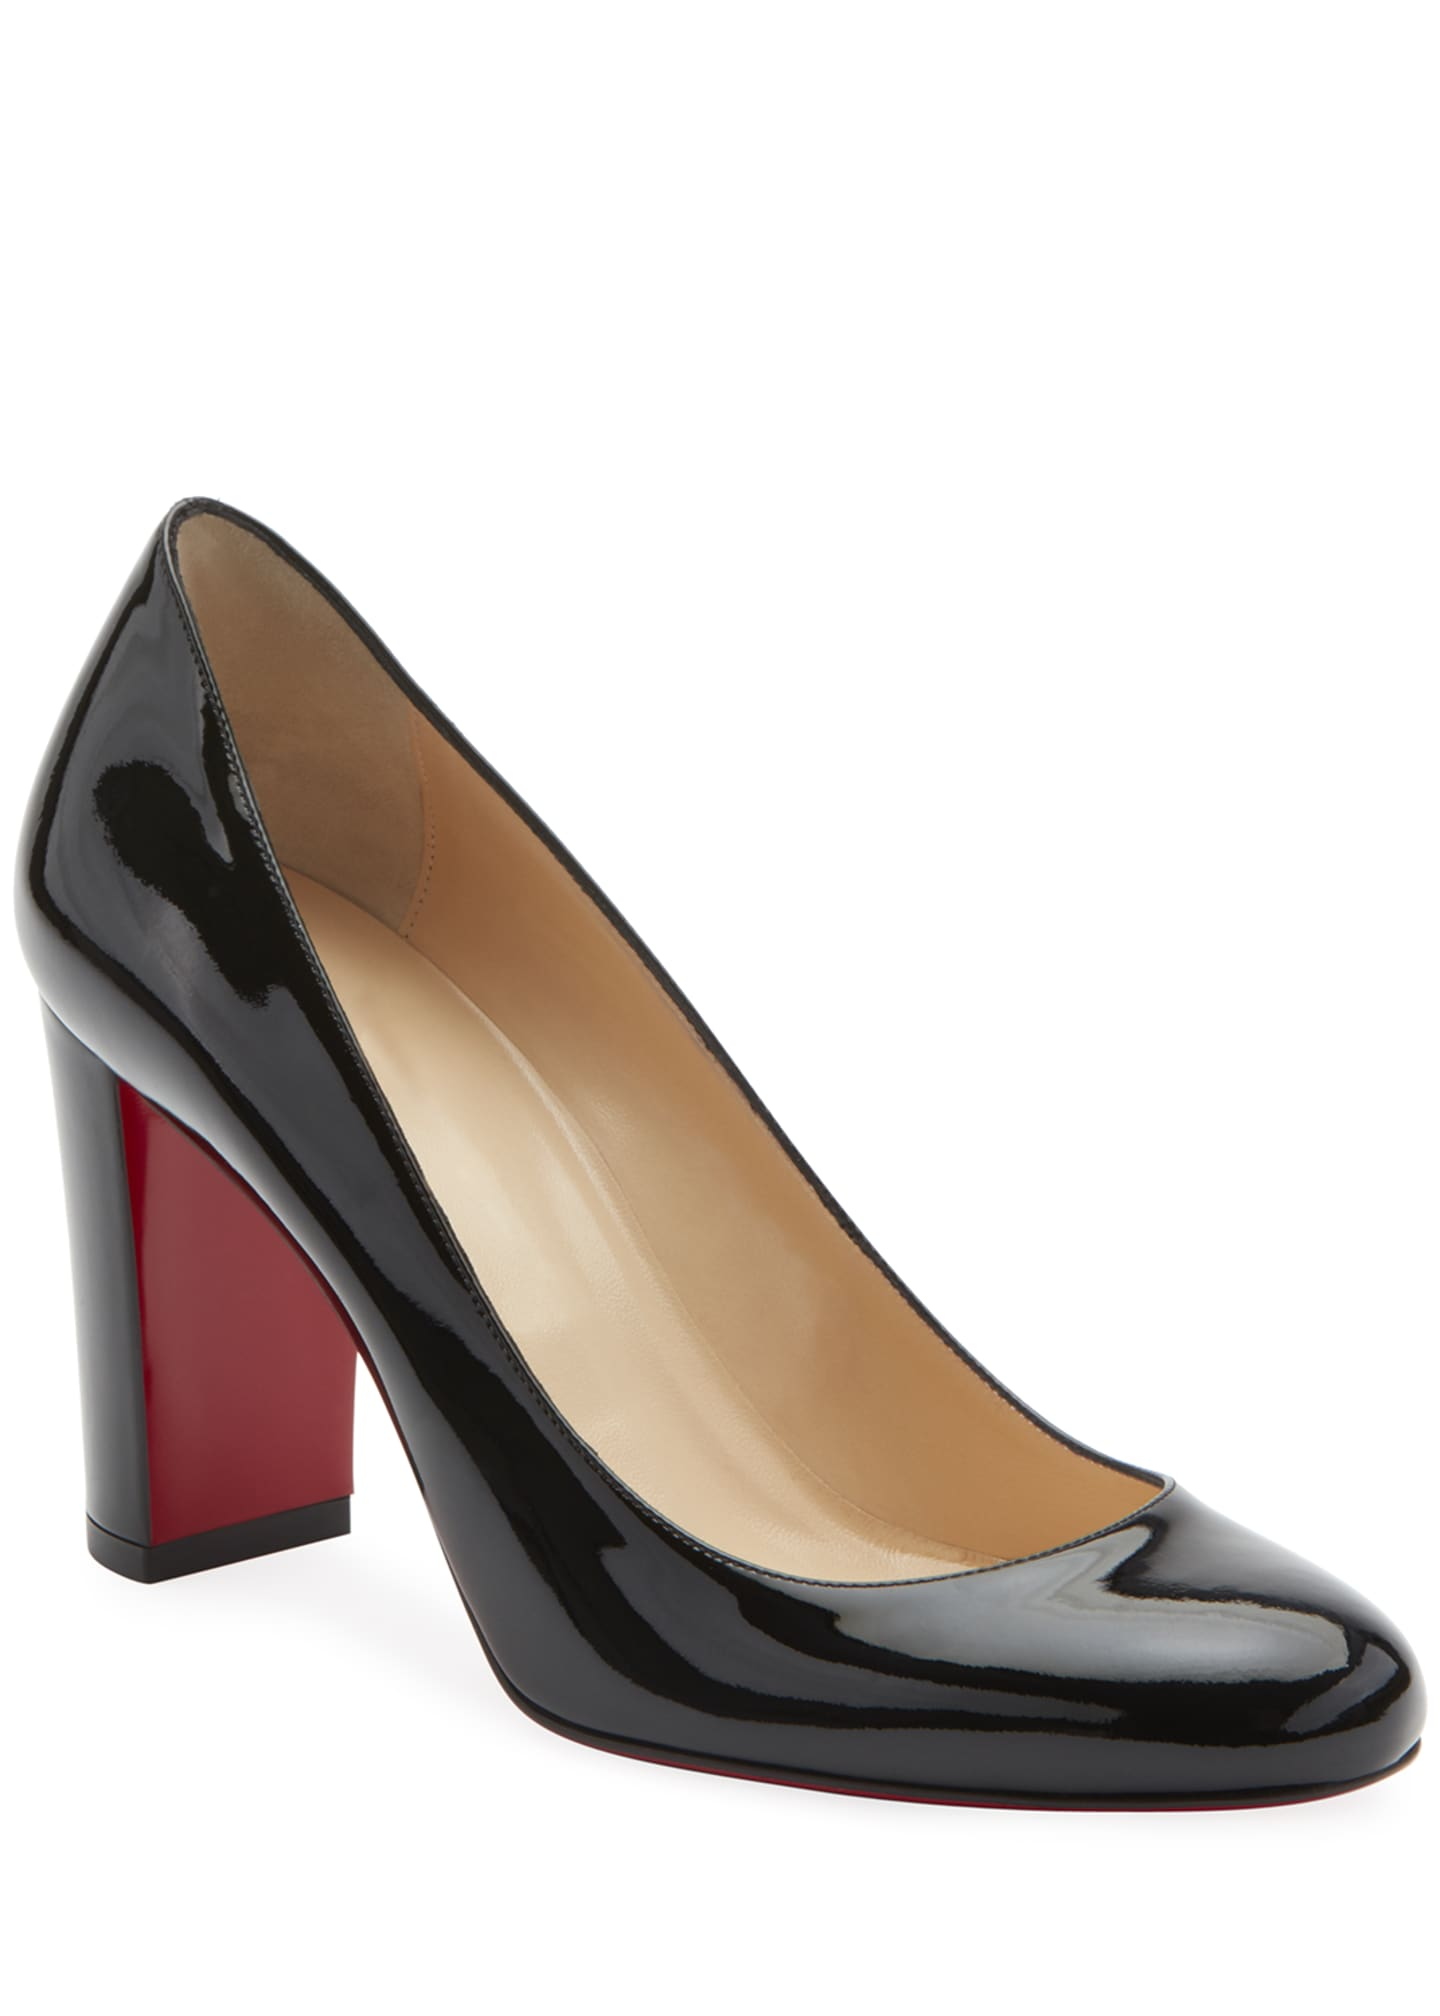 Image 2 of 3: Lady Gena Patent Red Sole Pumps